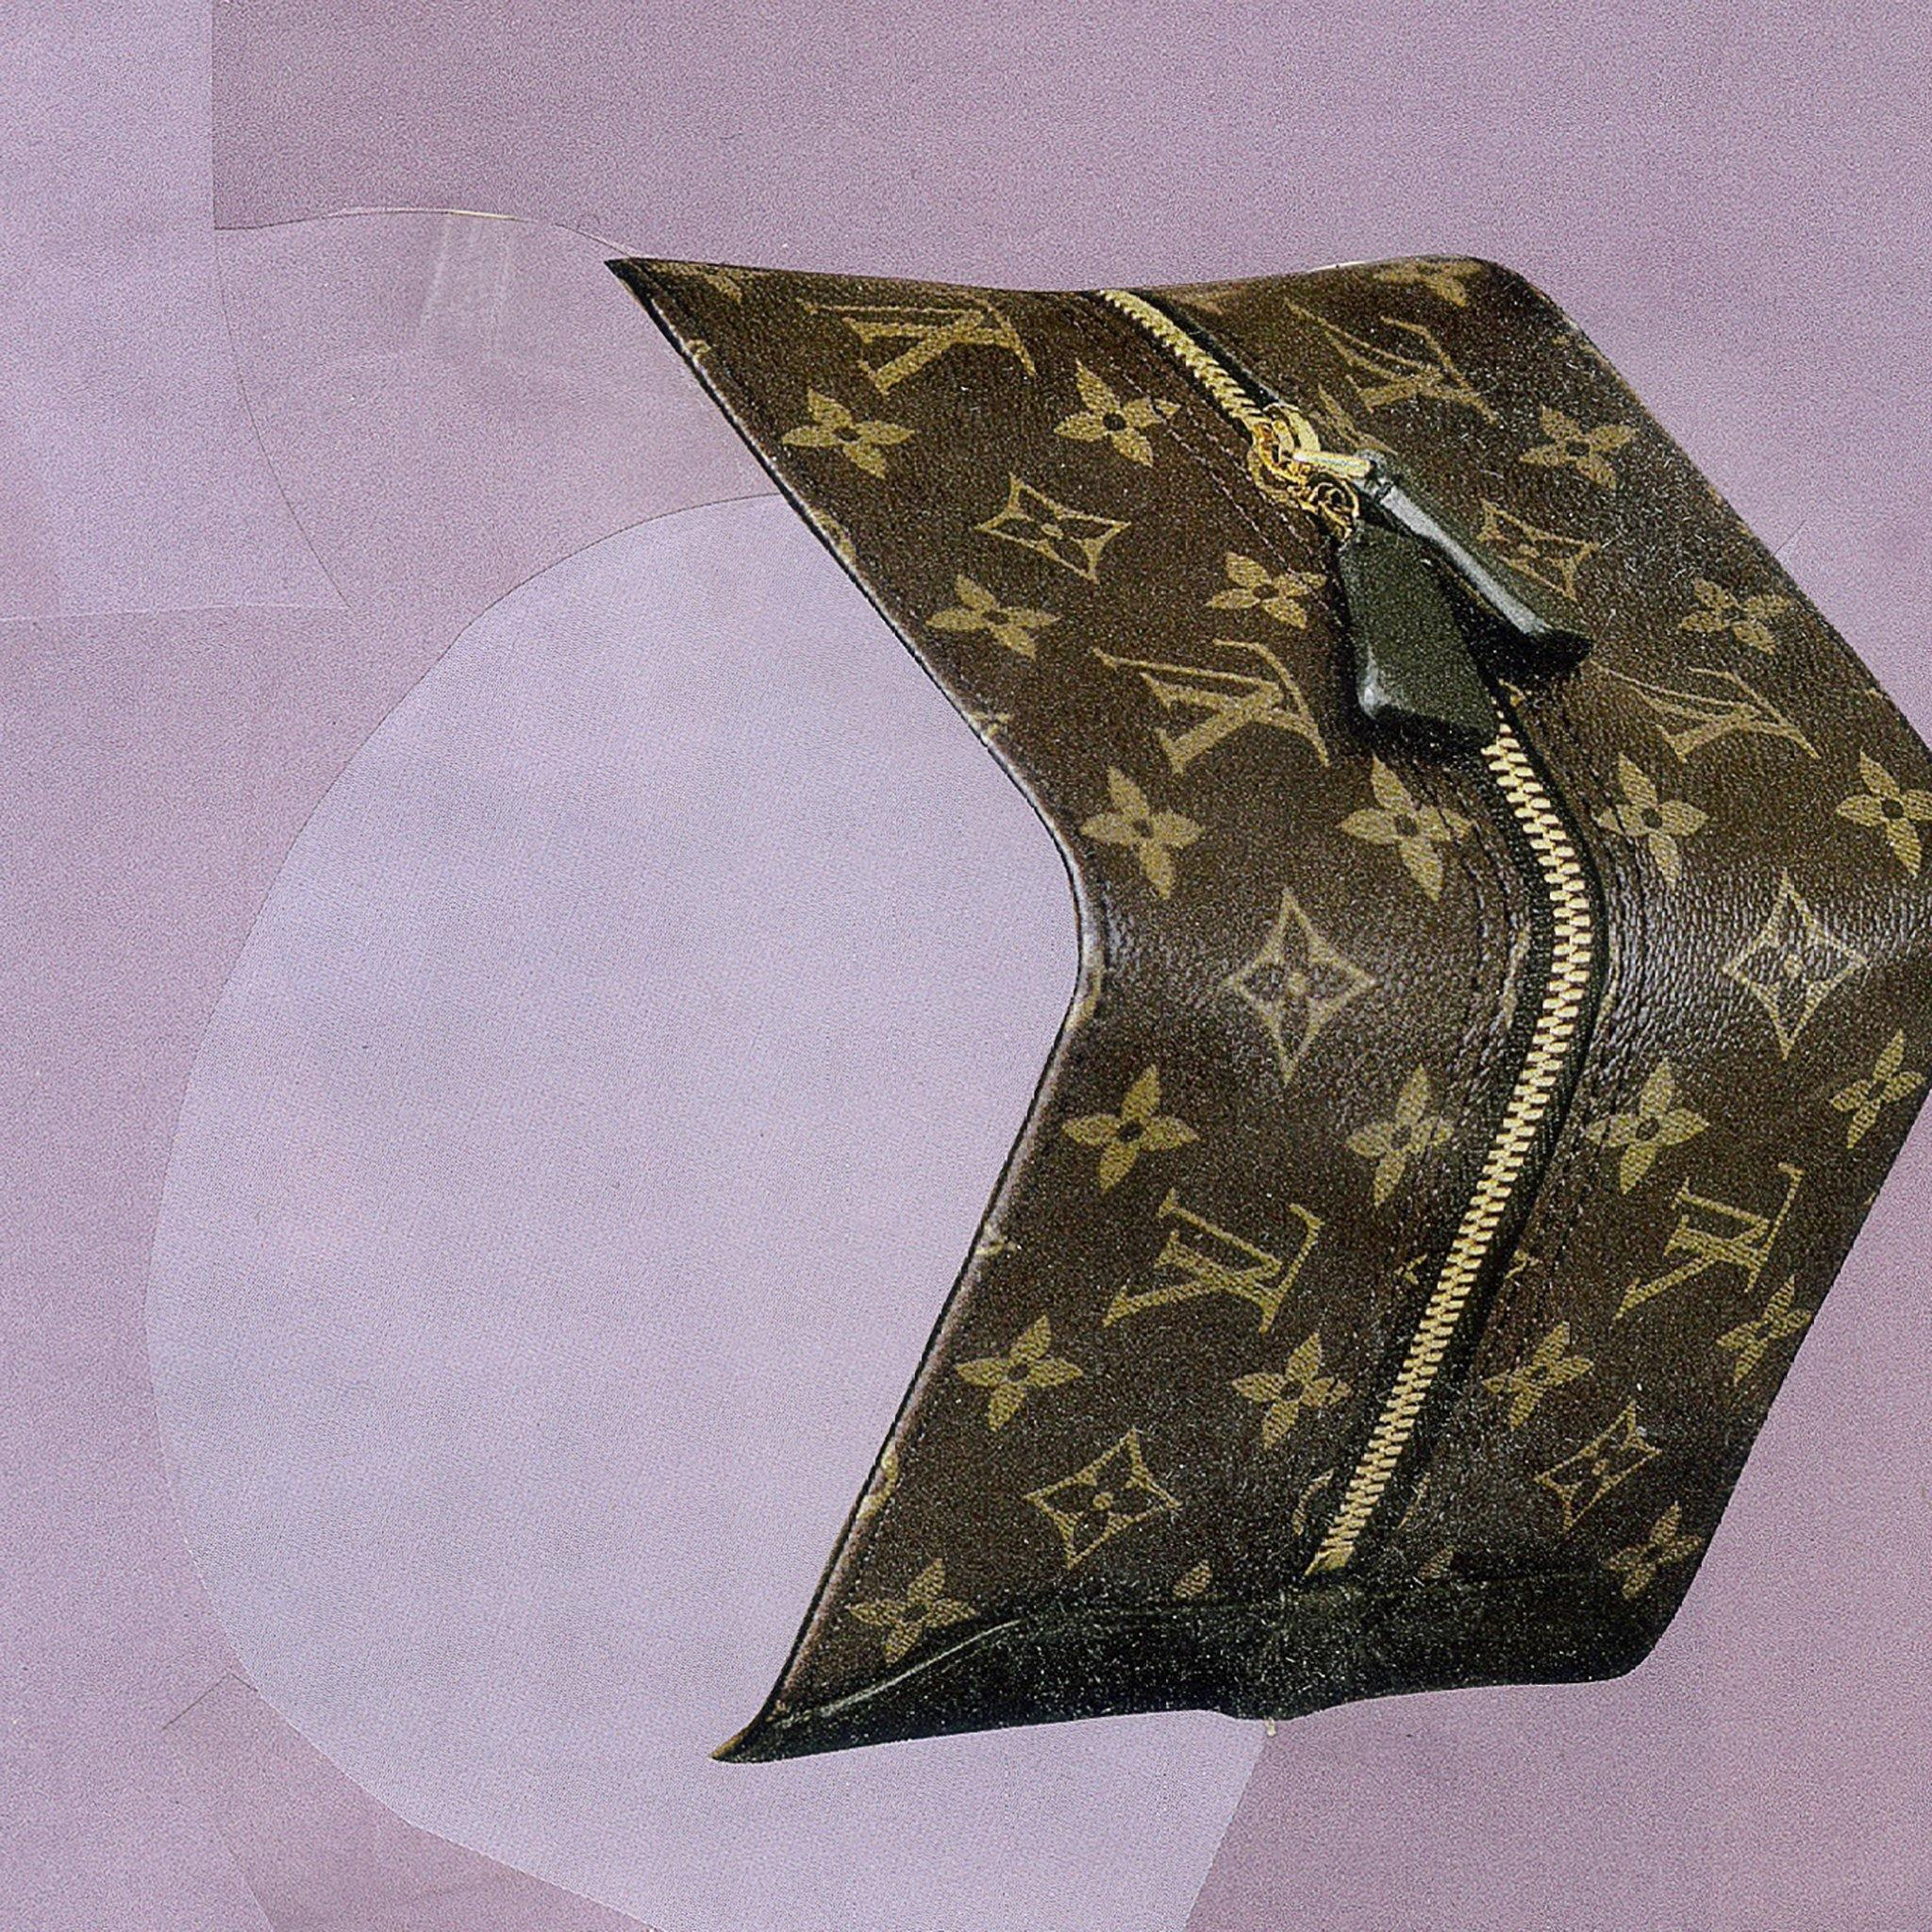 Louis Vuitton 2018 II, Collage  by  Louis Vuitton 2018 II Tappan